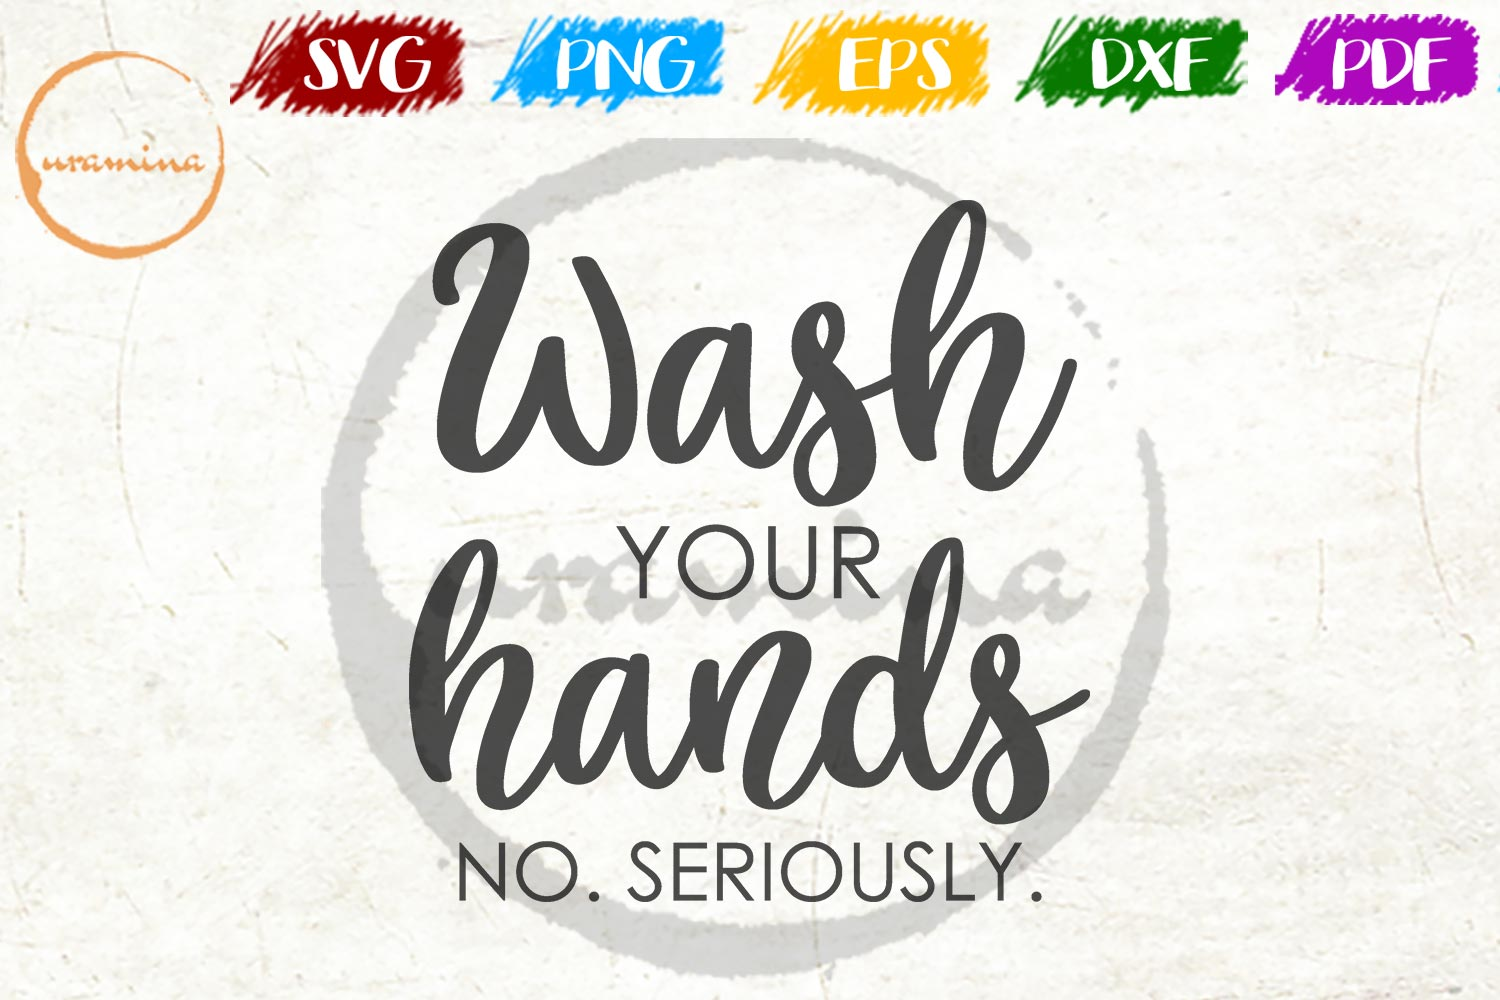 Download Free Wash Your Hands No Seriously Graphic By Uramina Creative Fabrica for Cricut Explore, Silhouette and other cutting machines.